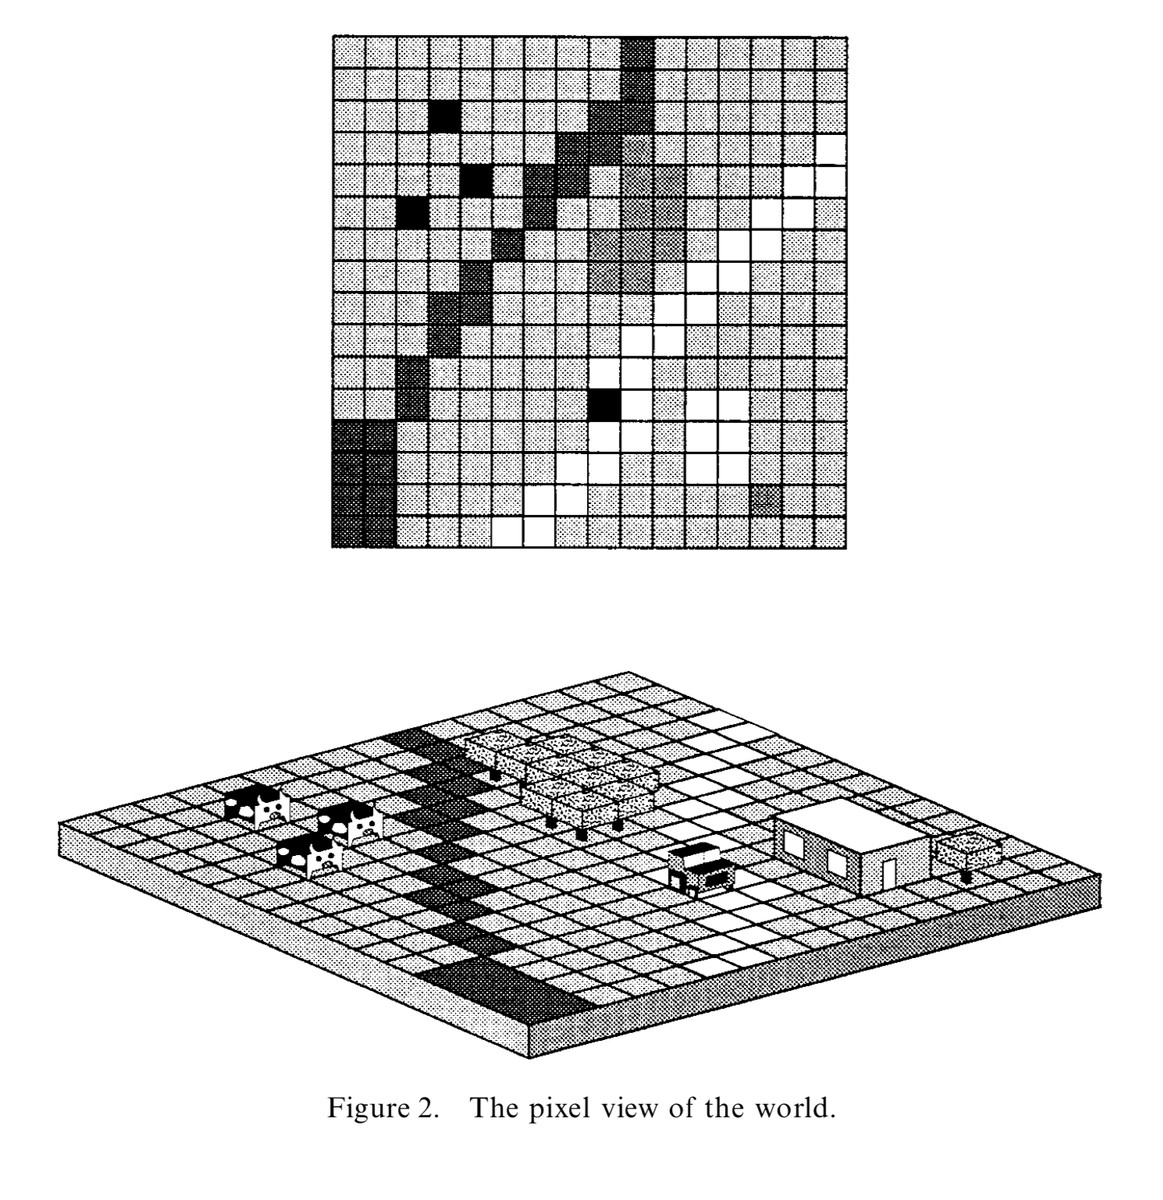 The pixel view of the world